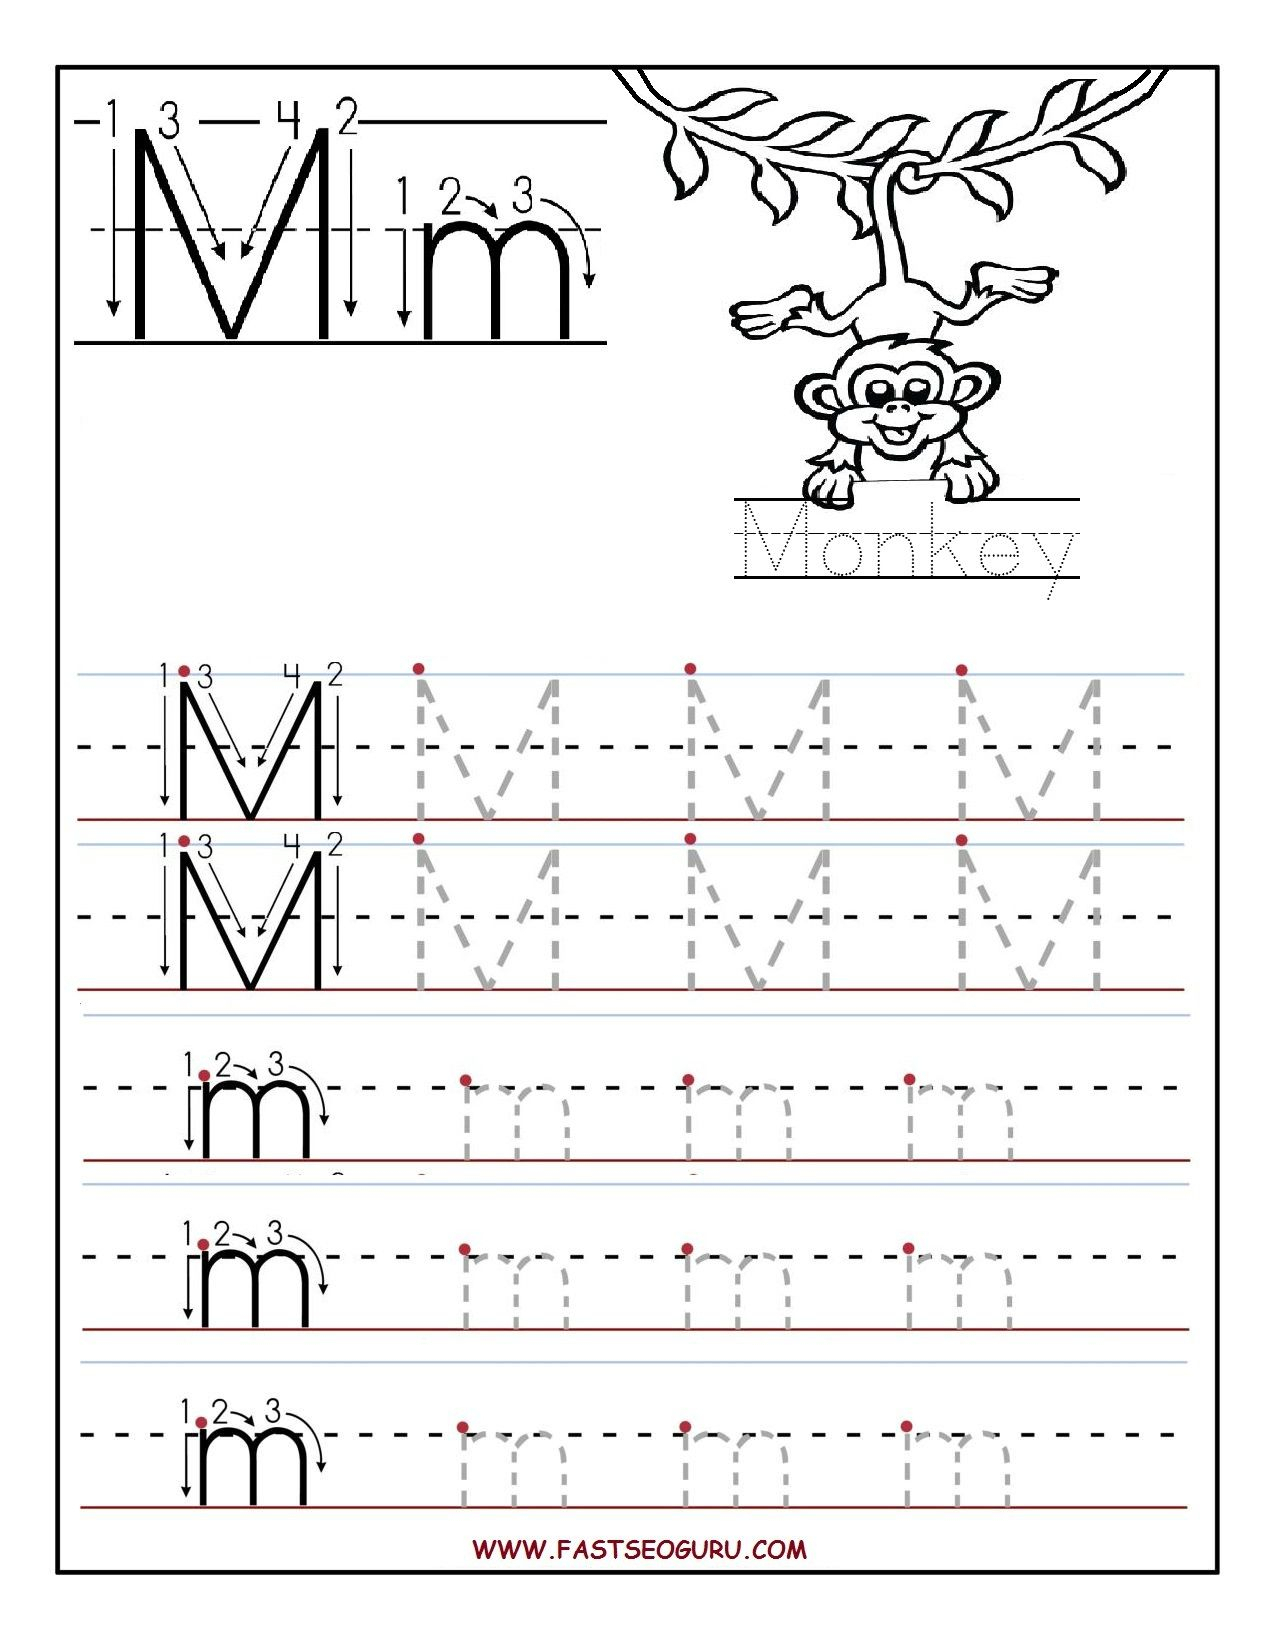 Printable Letter M Tracing Worksheets For Preschool regarding M Letter Worksheets Preschool